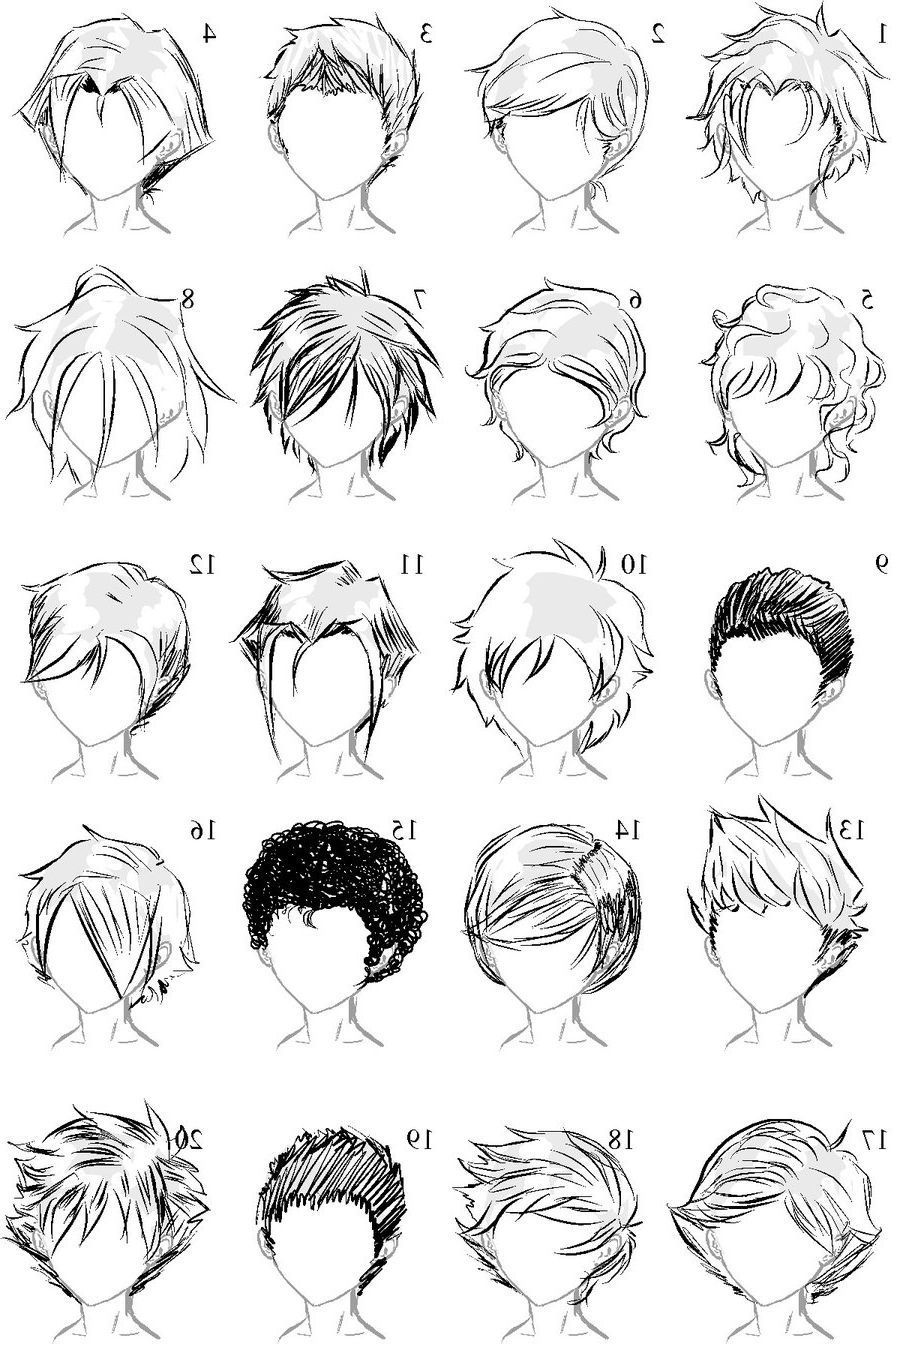 Hairstyles Drawing Hairstyles Drawing In 2021 Boy Hair Drawing Anime Boy Hair Drawing Hair Tutorial